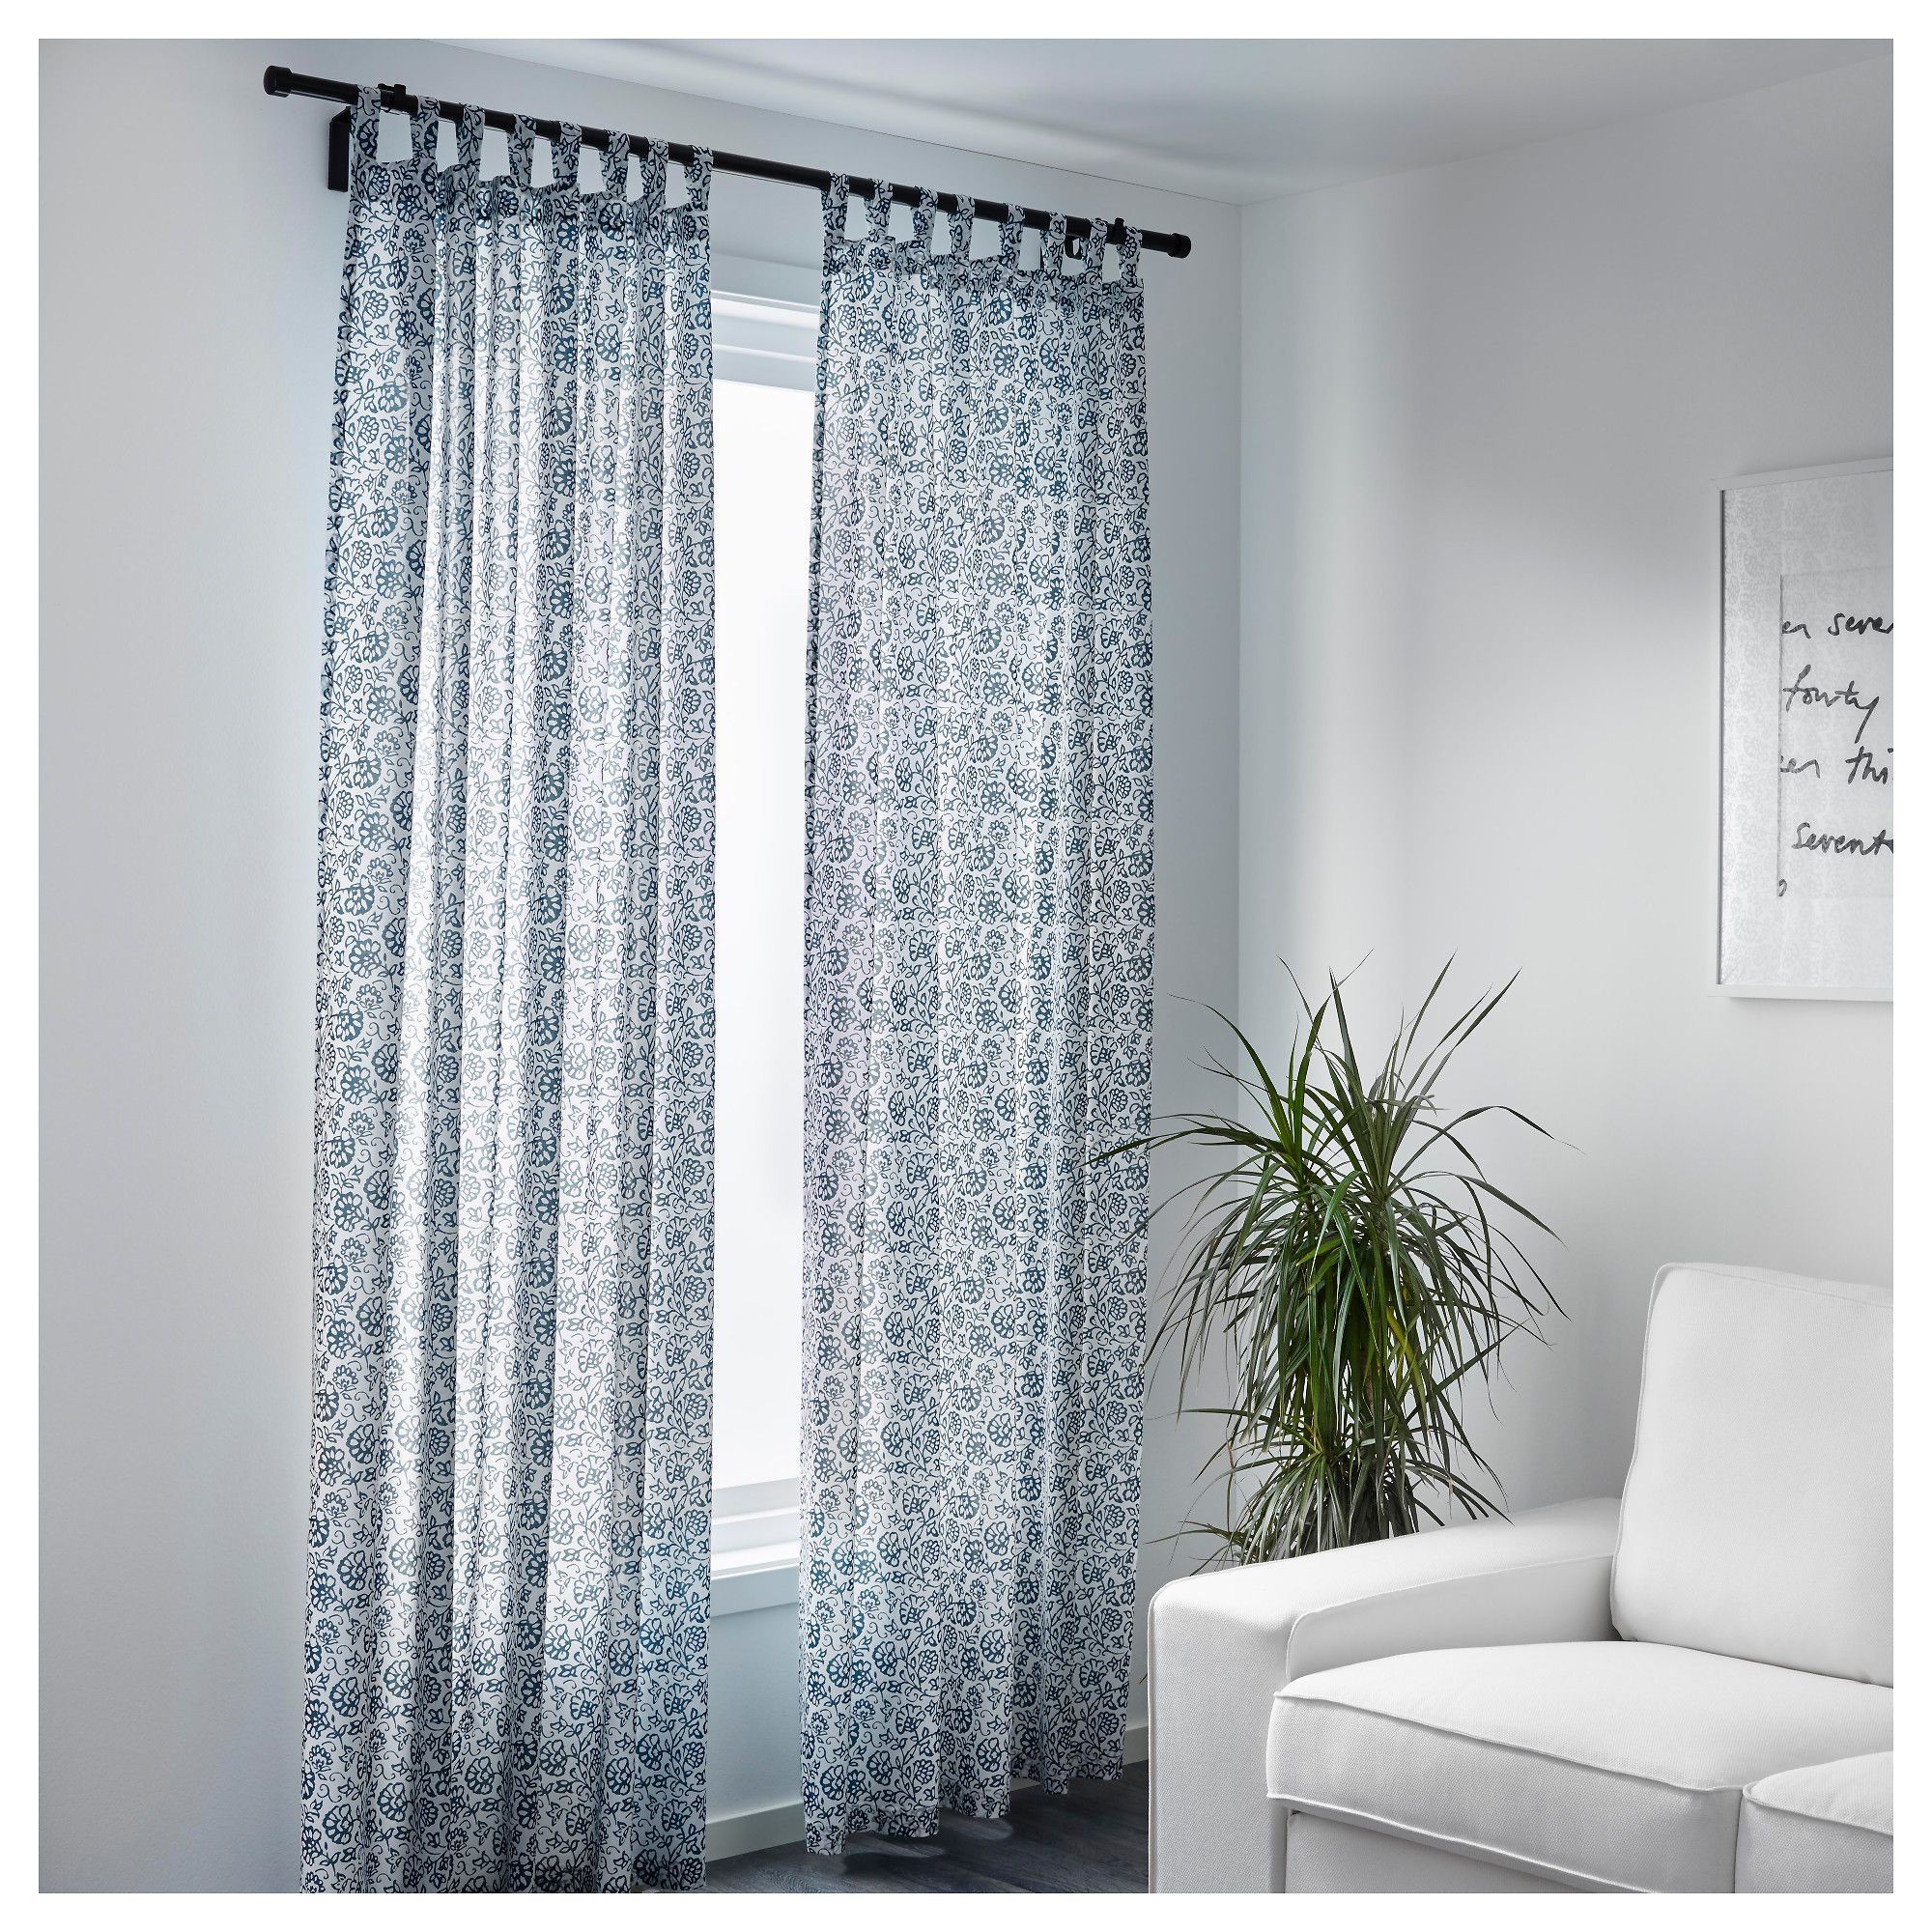 mj lk rt curtains 1 pair blue white 145x250 cm ikea. Black Bedroom Furniture Sets. Home Design Ideas